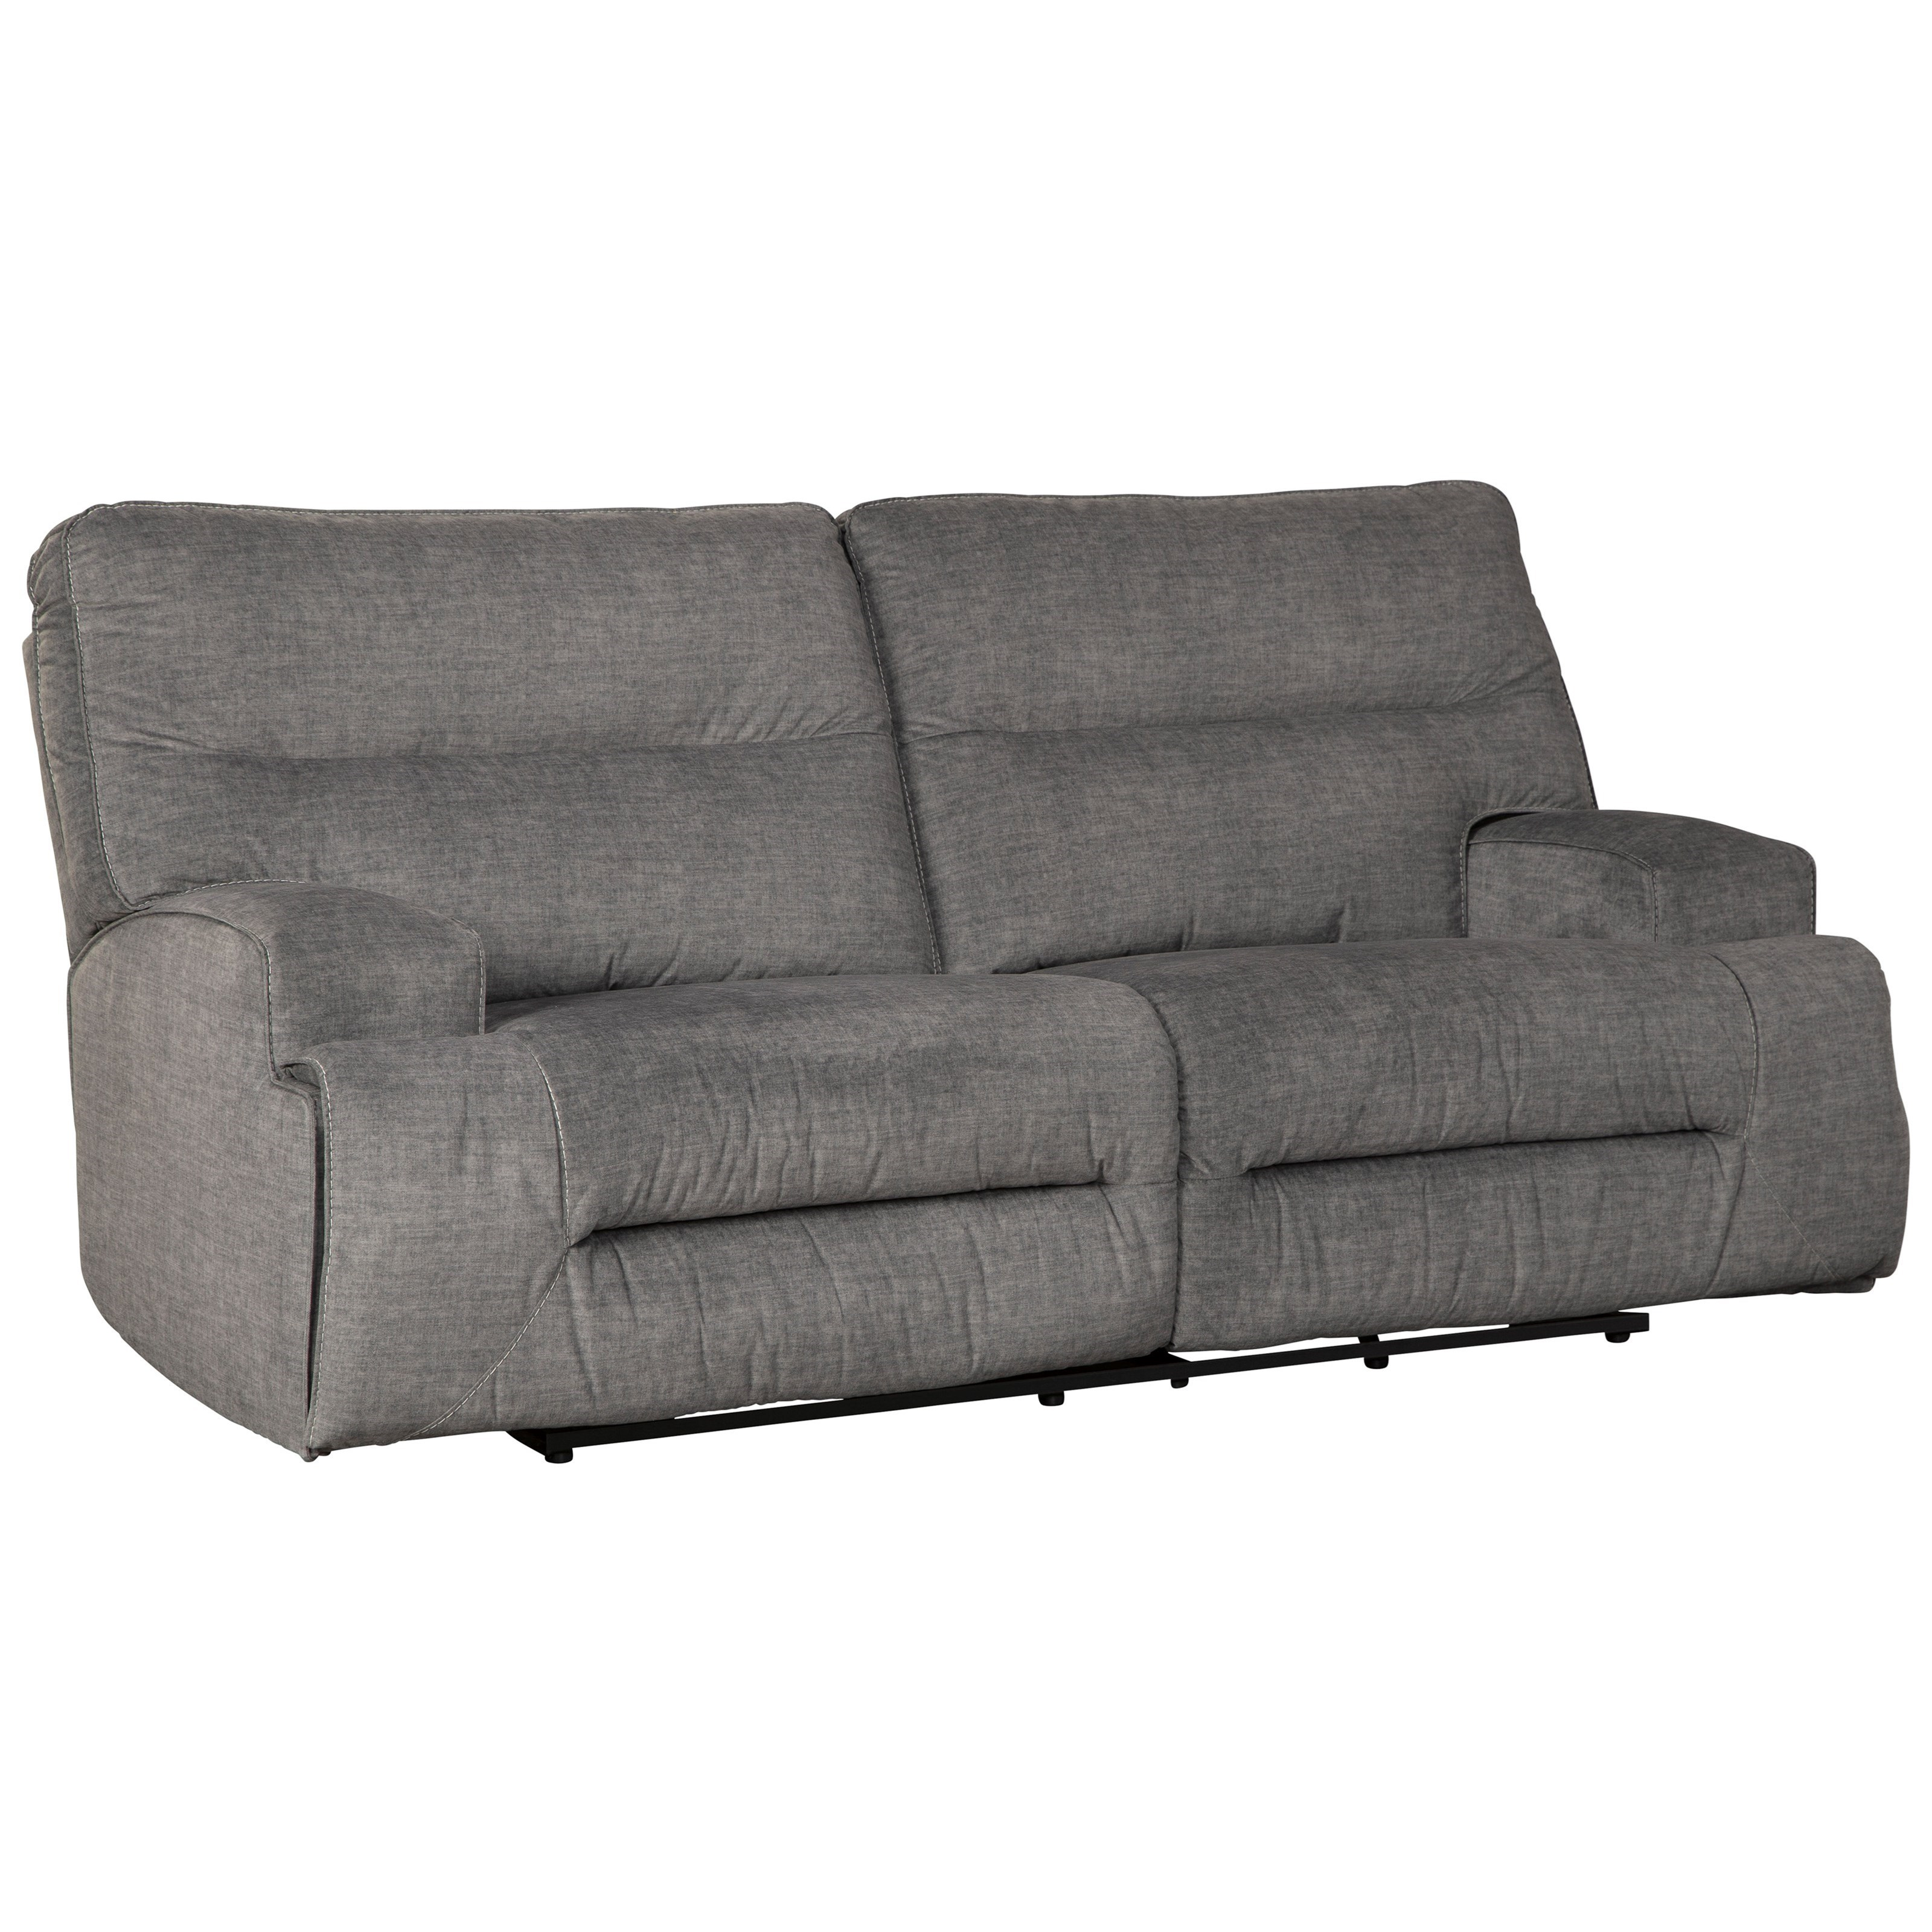 Coombs 2-Seat Reclining Sofa by Benchcraft at Miller Waldrop Furniture and Decor